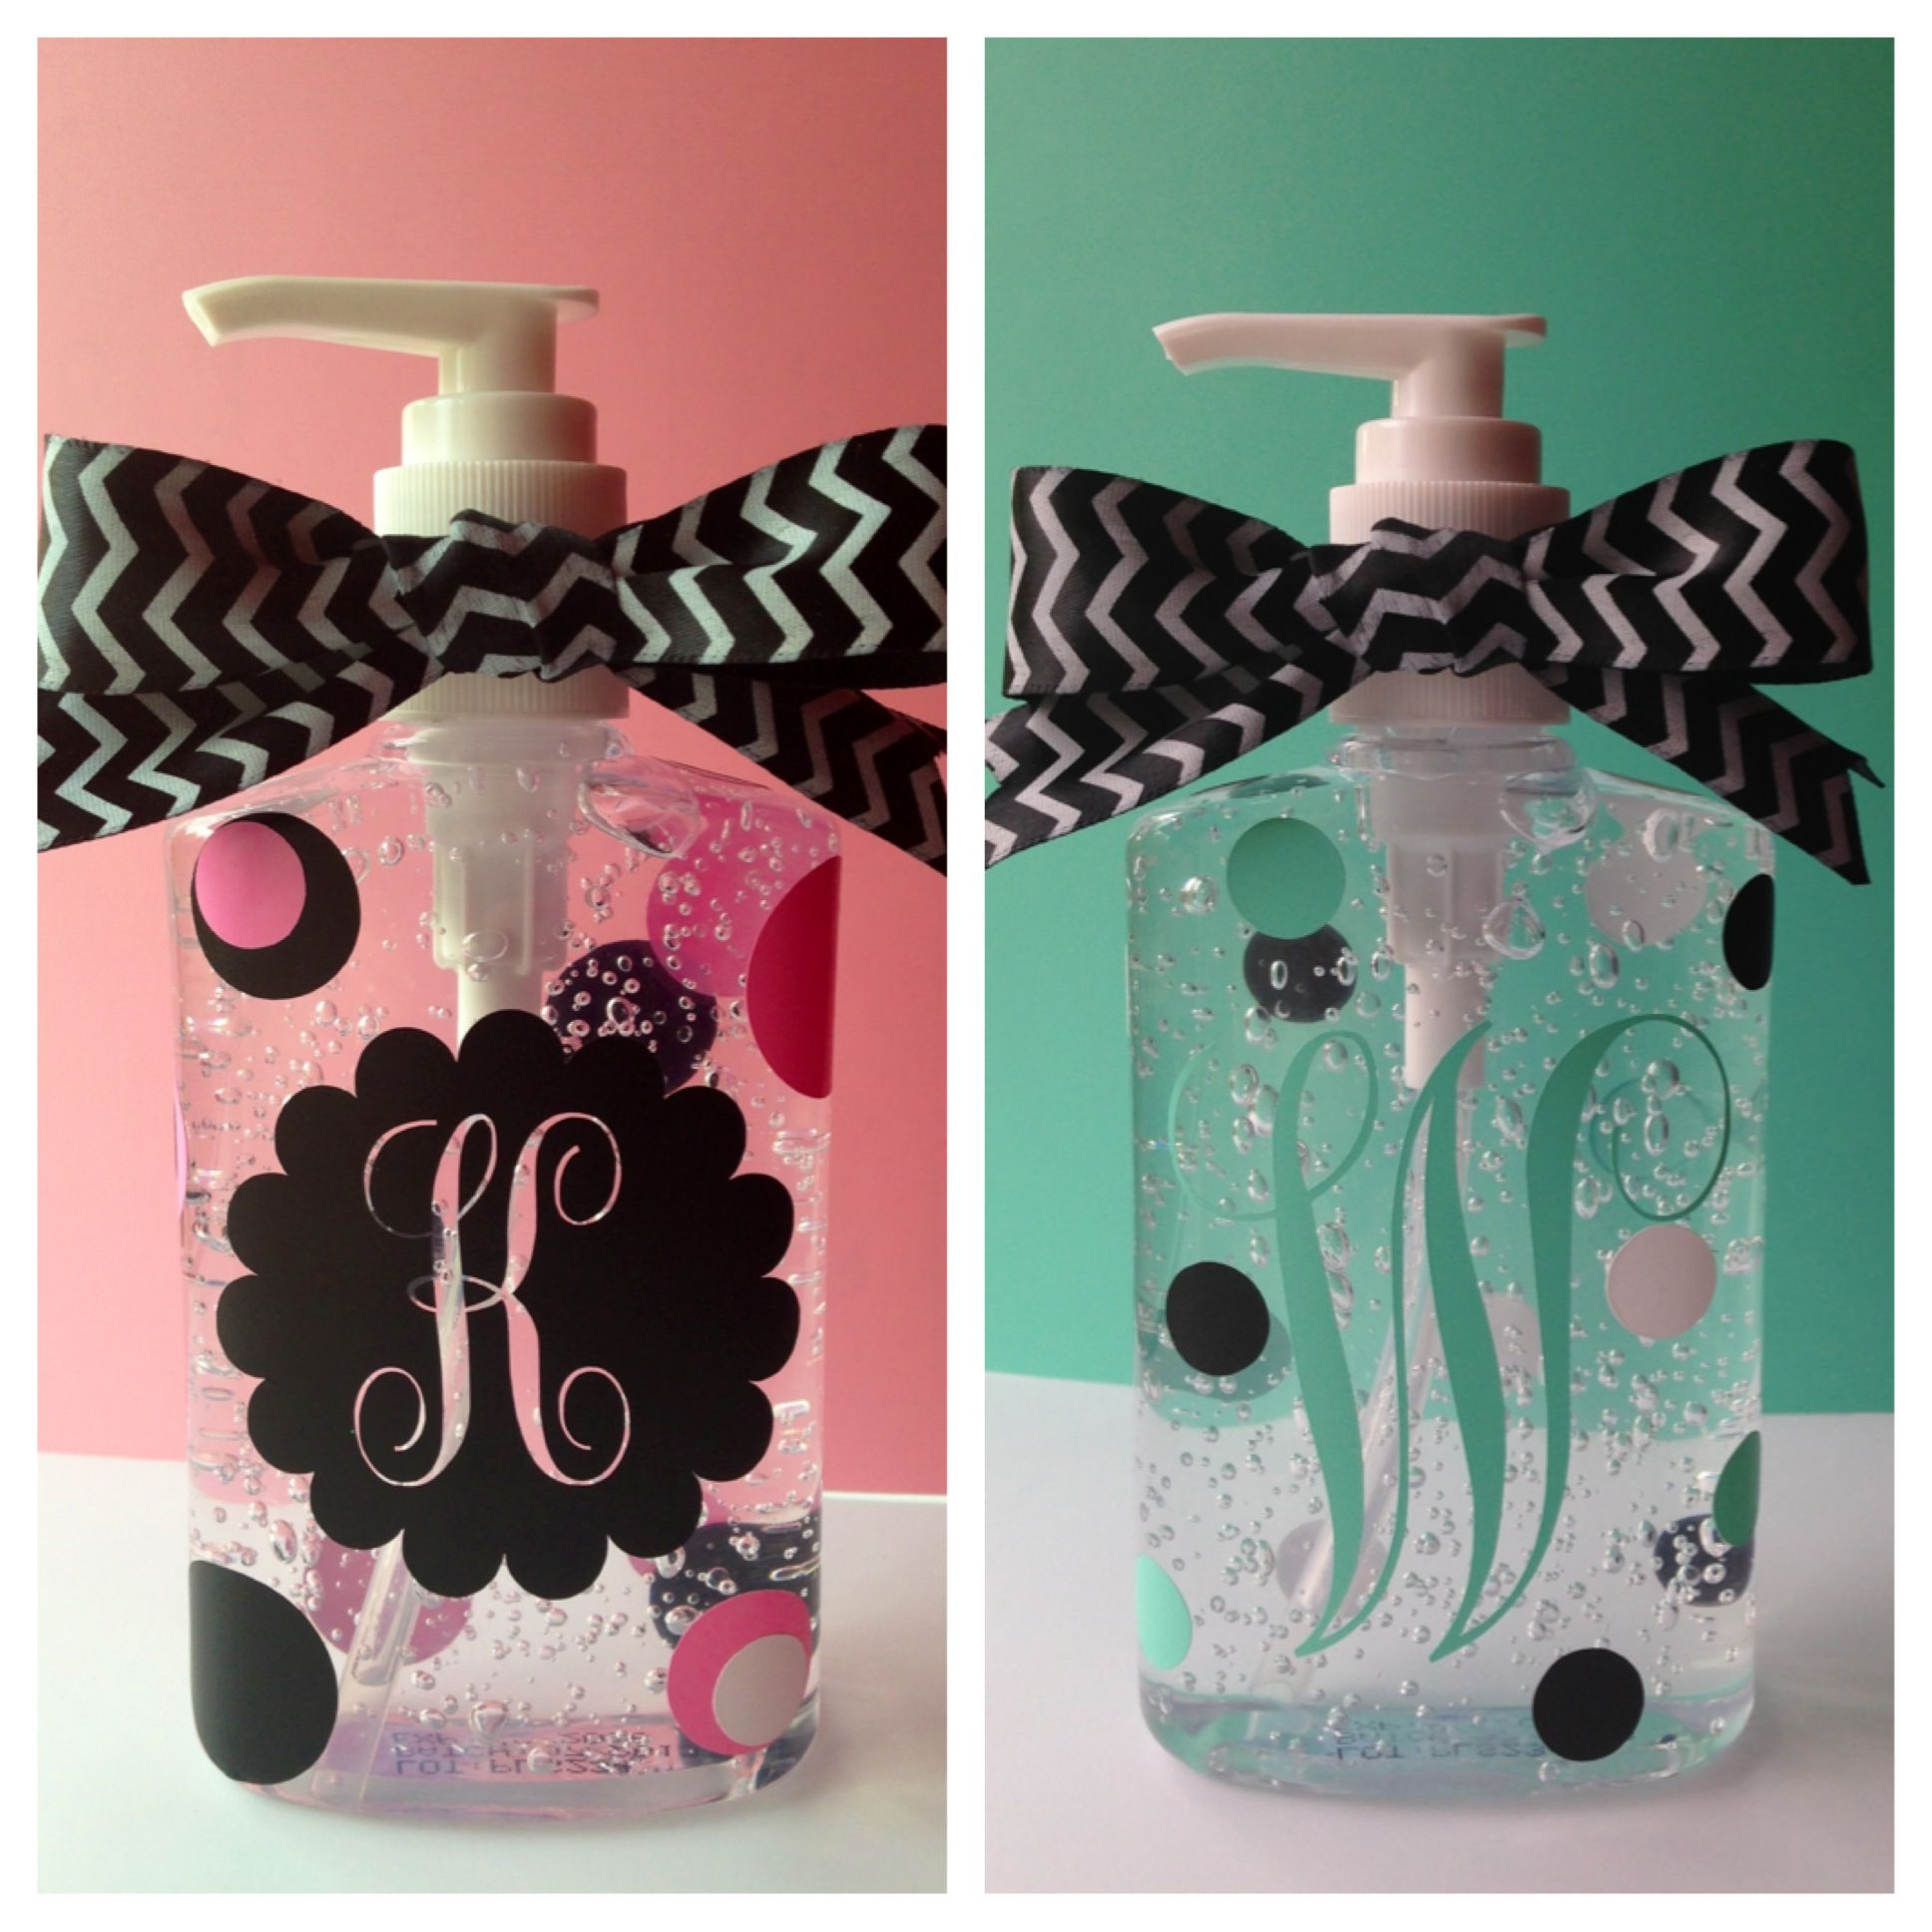 teacher gifts silhouette vinyl craft ideas pinterest